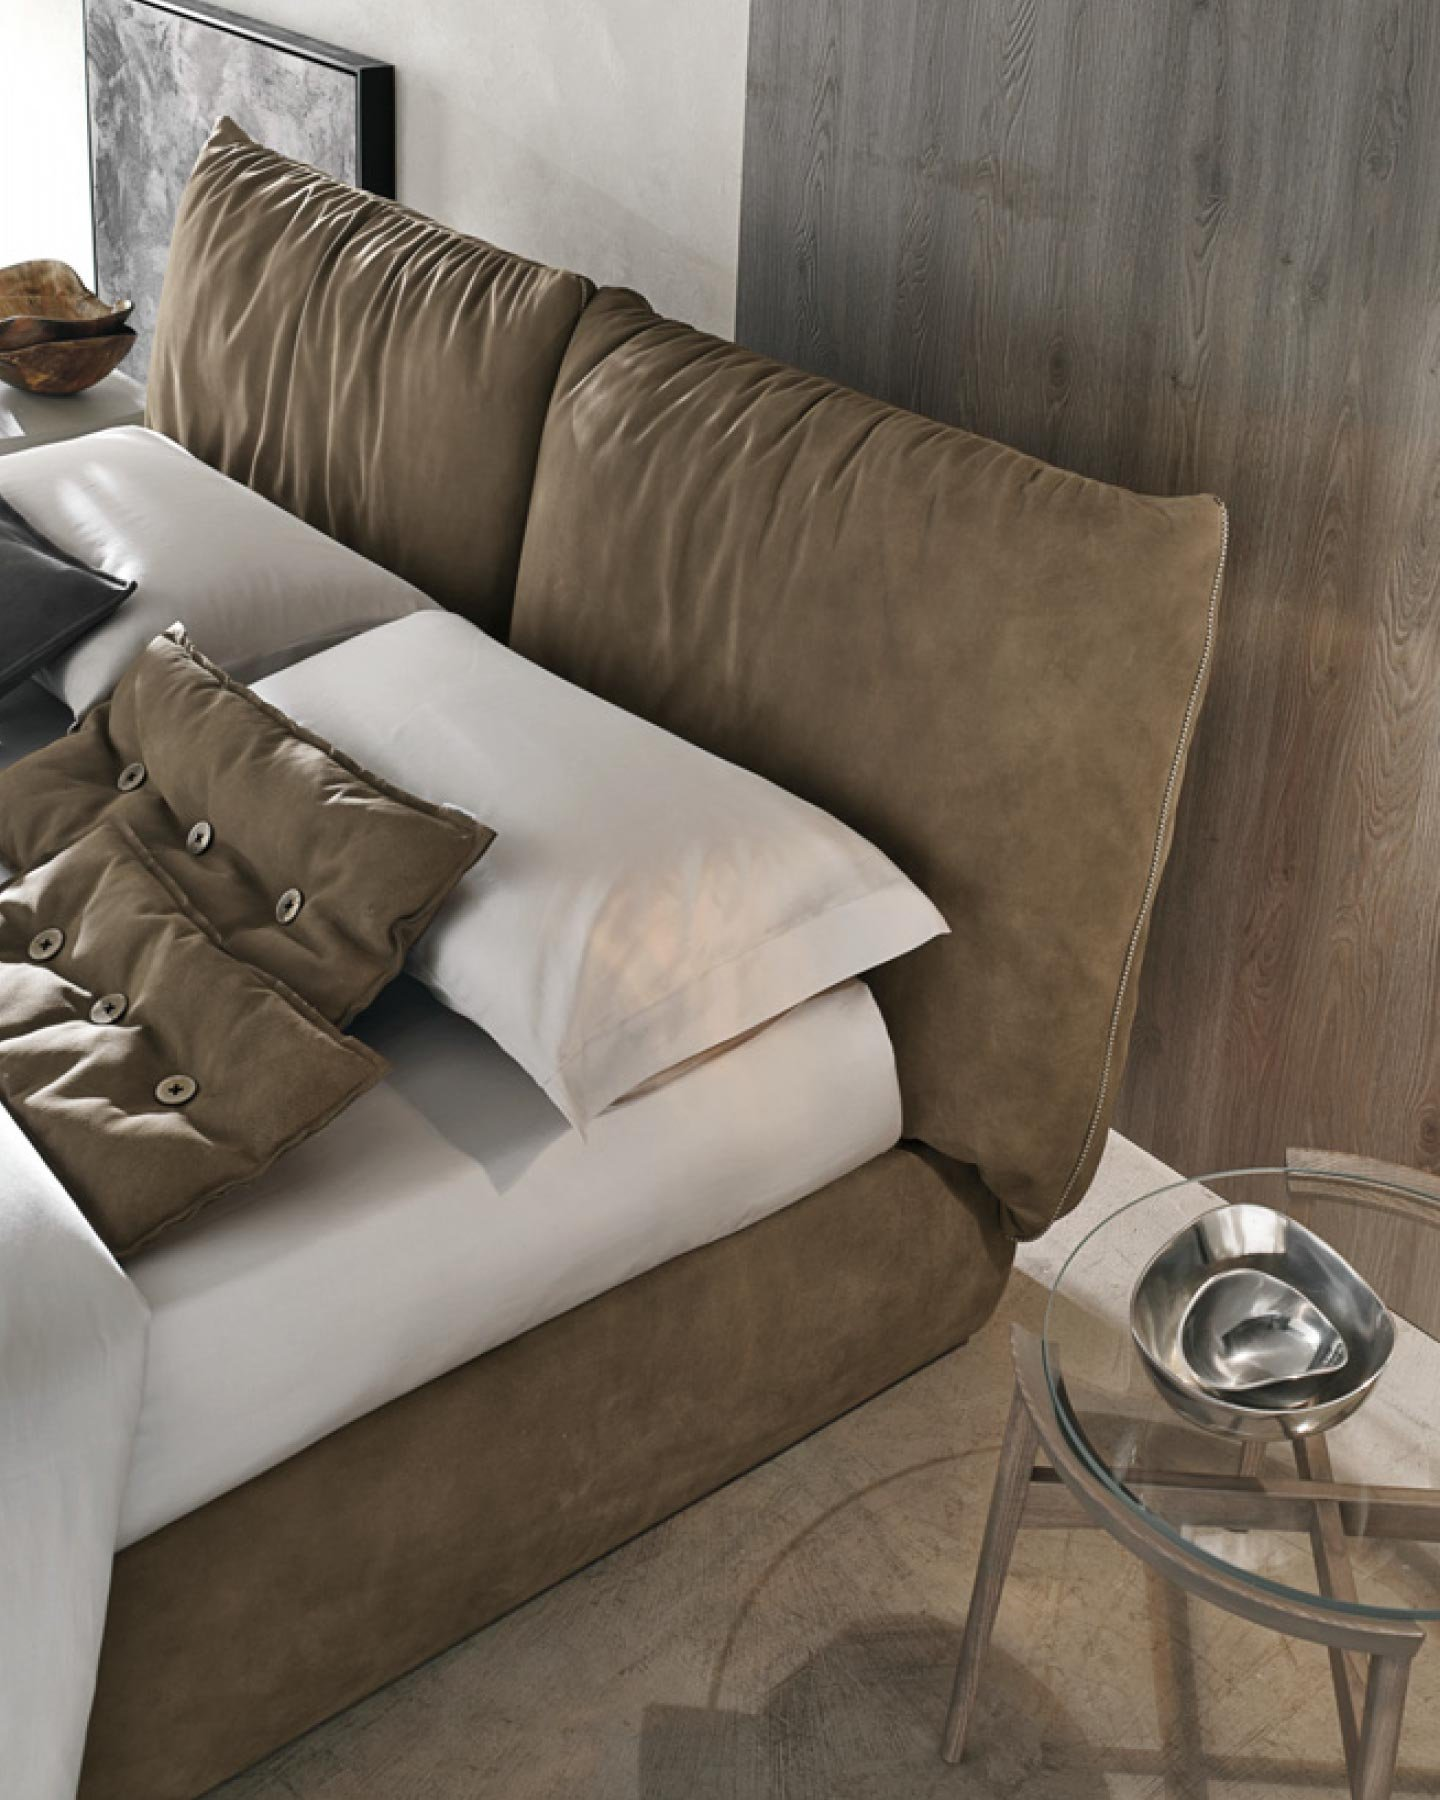 Sogno Bed from Tomasella